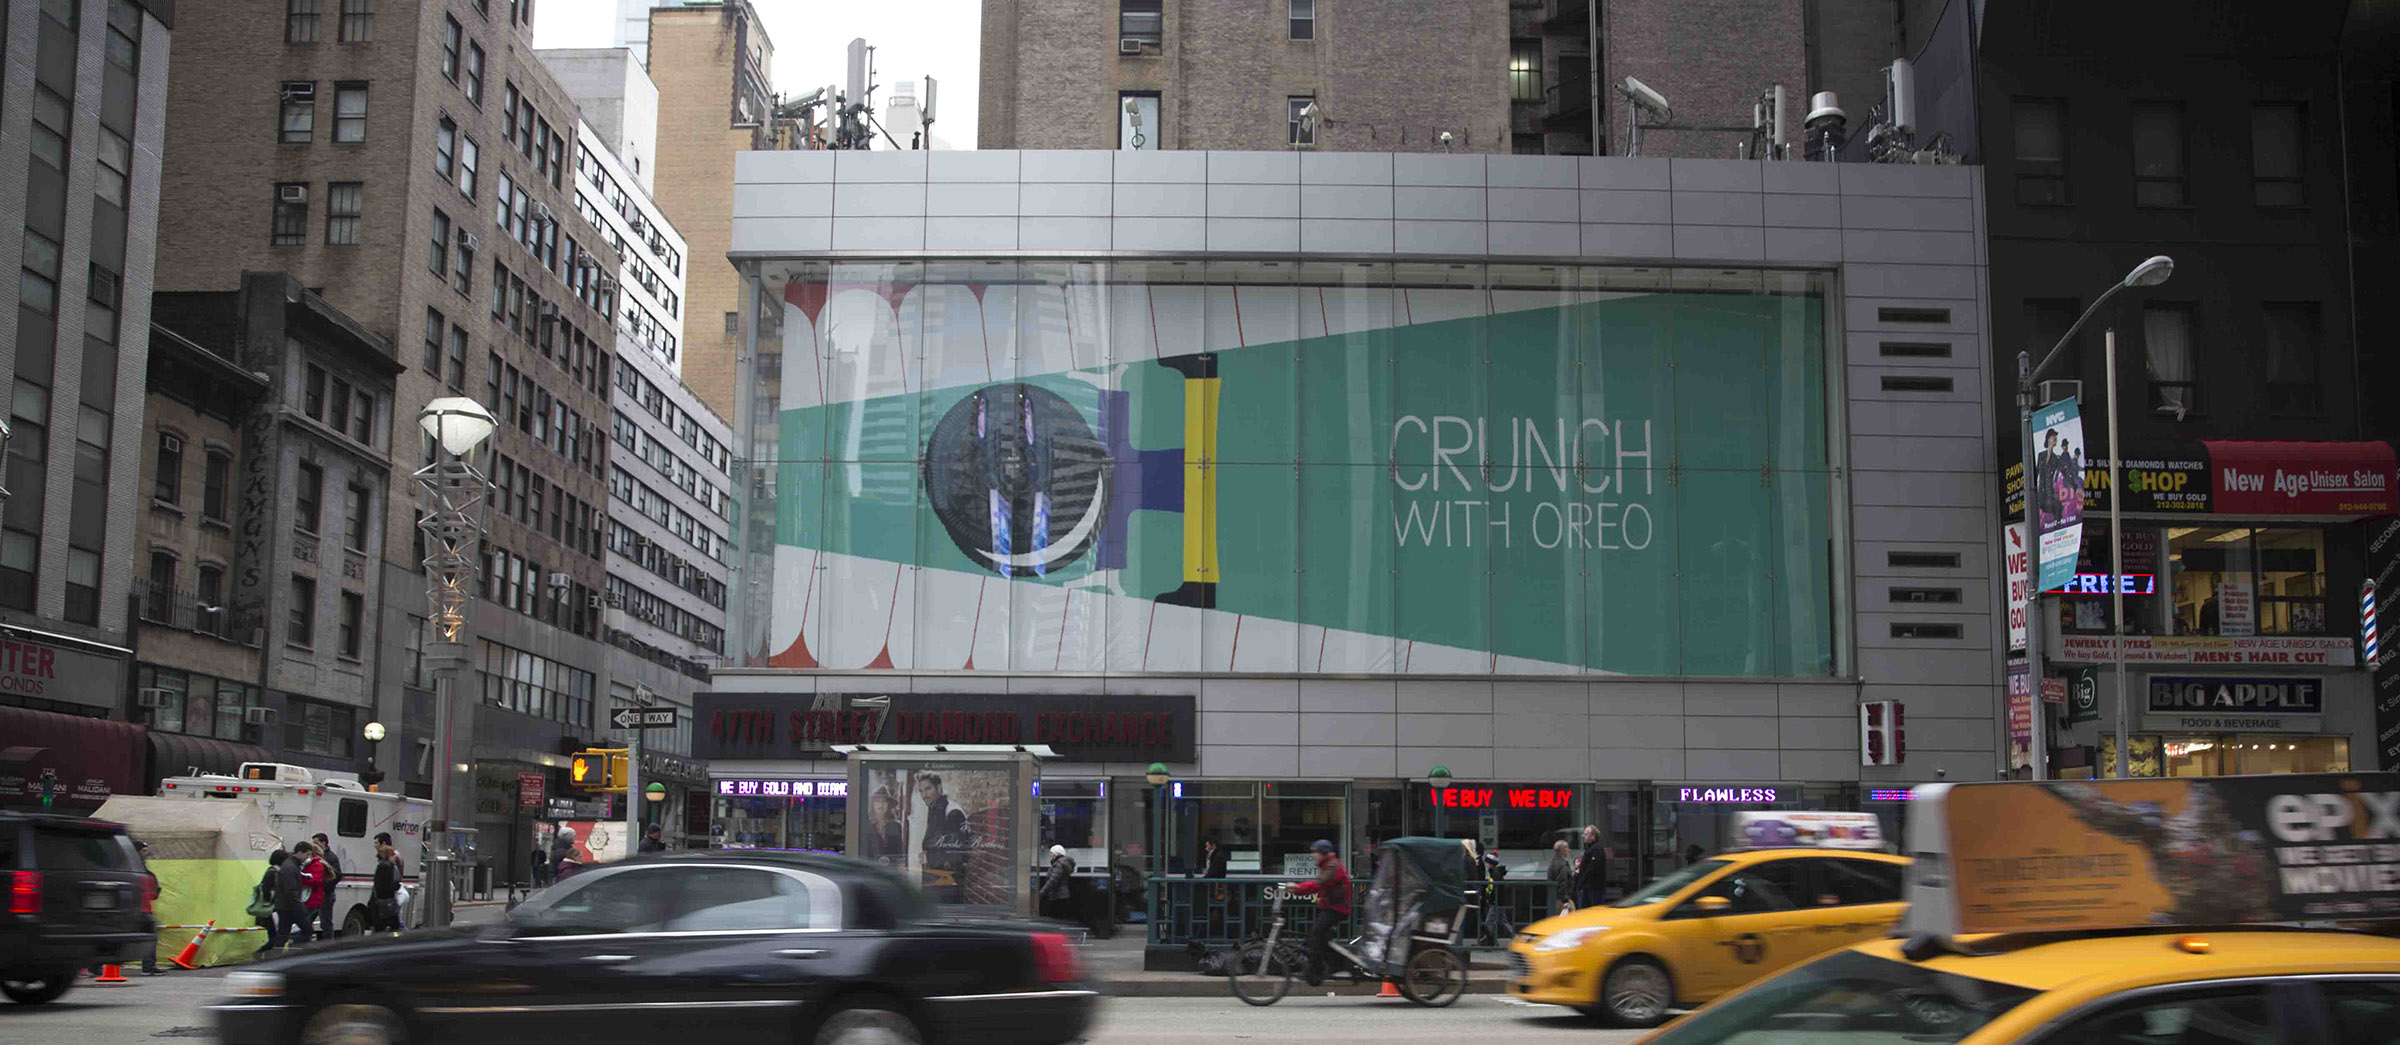 Crunch With Oreo